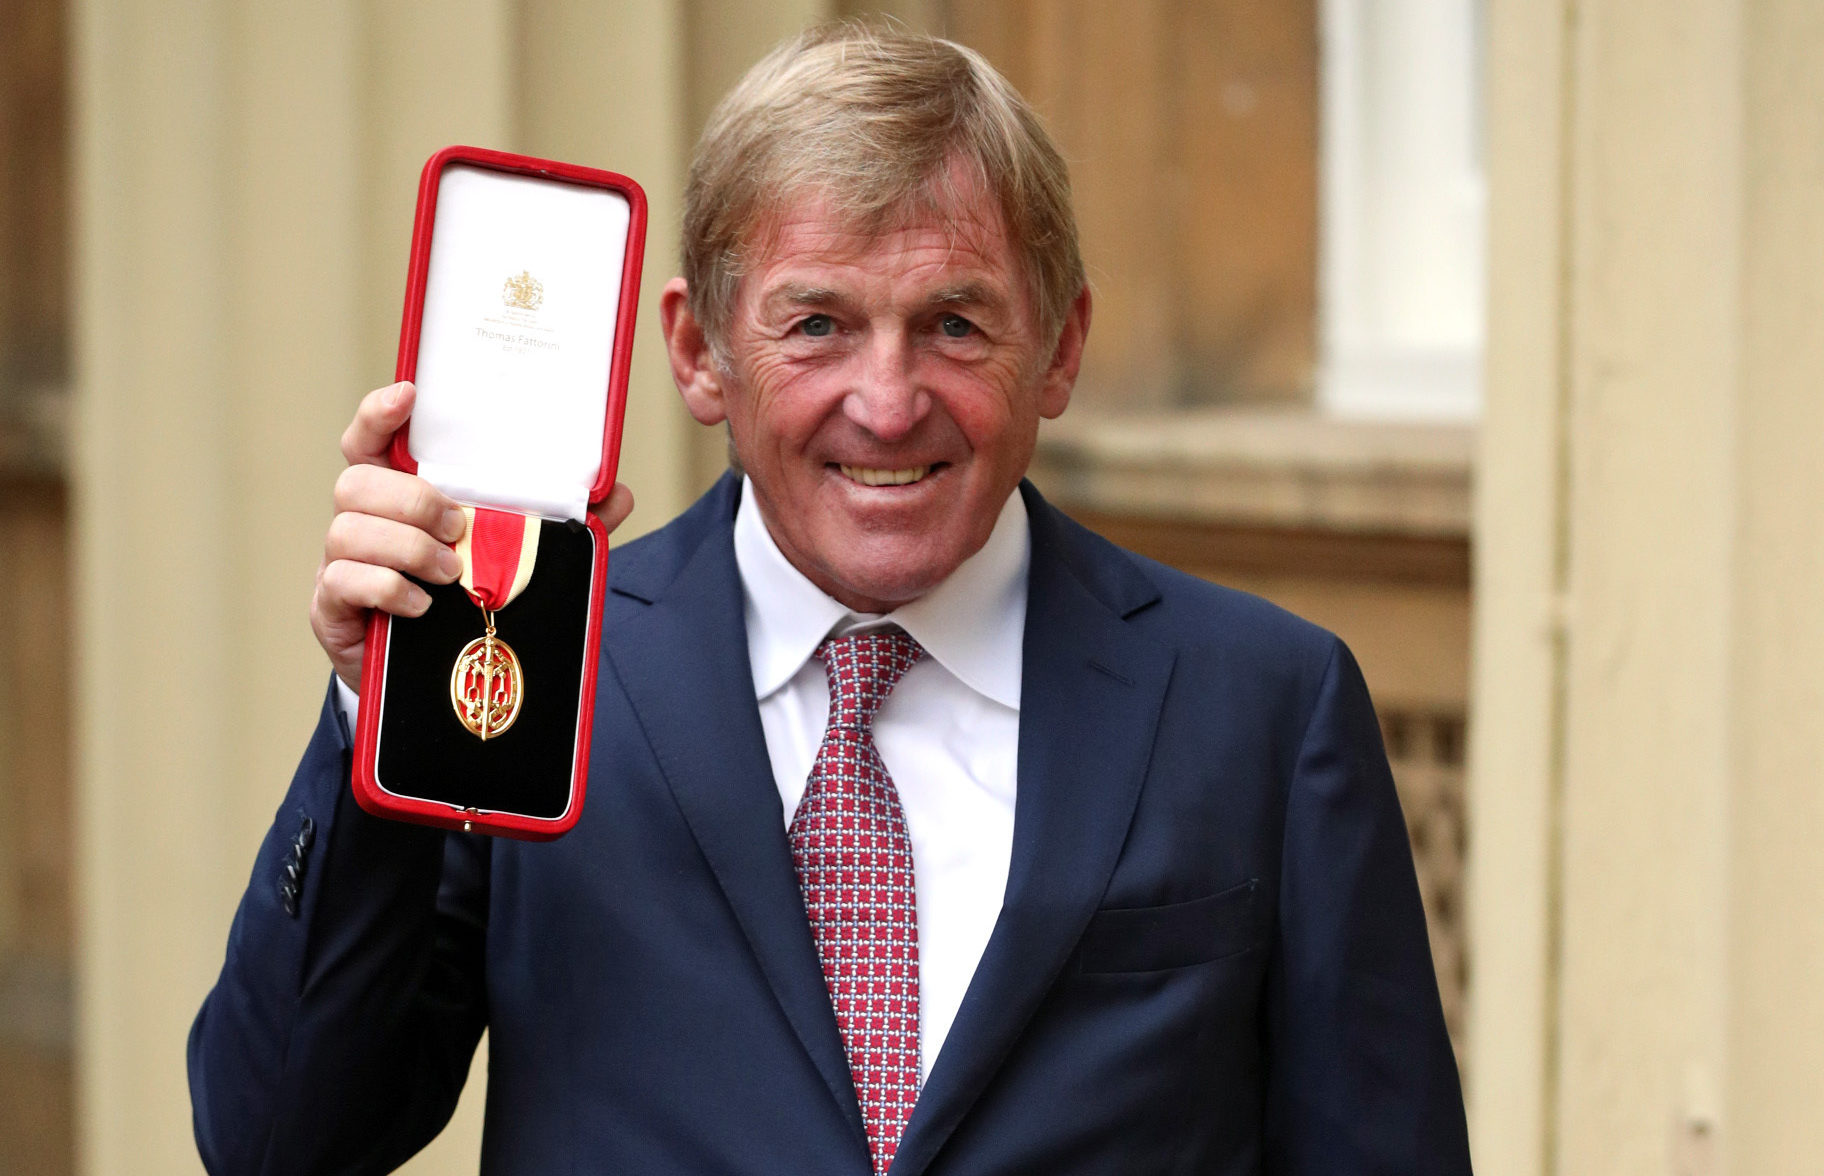 Liverpool legend Sir Kenny Dalglish after being knighted (Jonathan Brady/PA Wire)